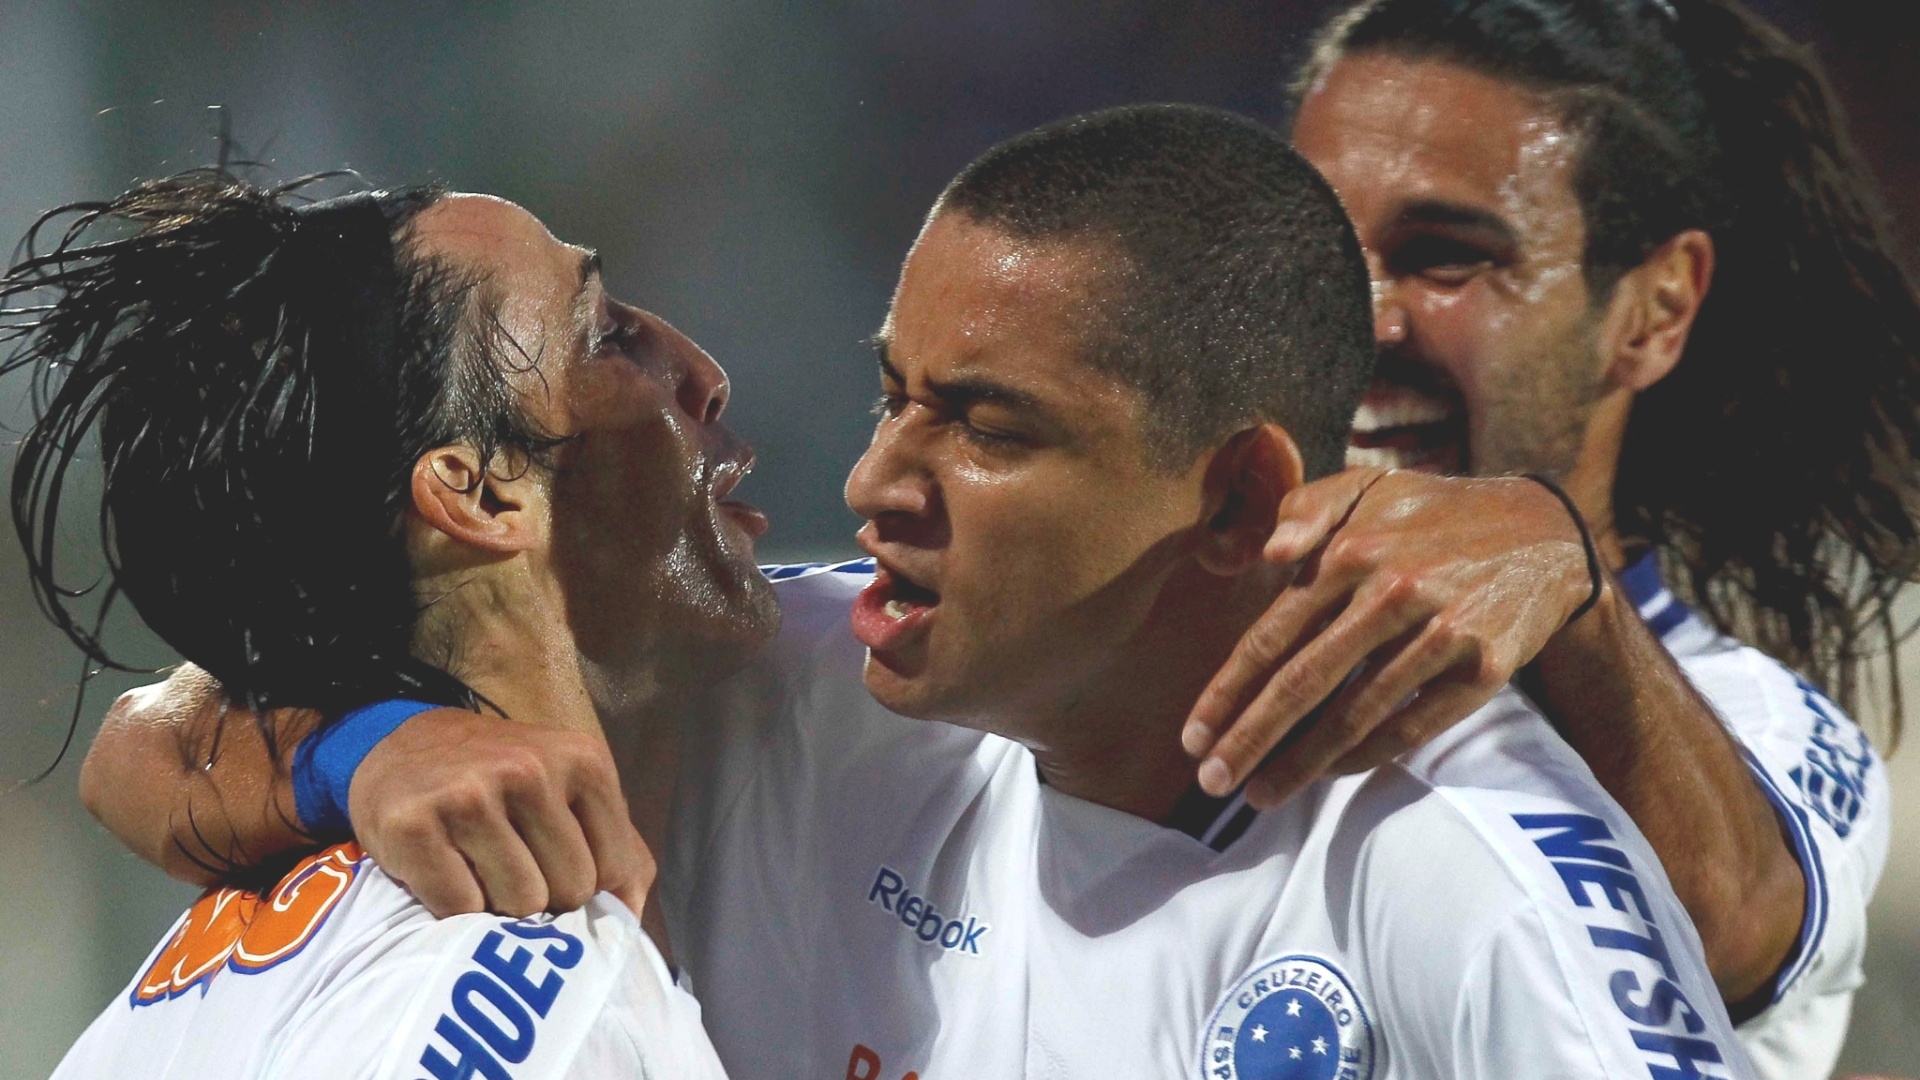 Wellington Paulista e Faras comemoram gol na vitria do Cruzeiro sobre o Inter (13/11/2011)